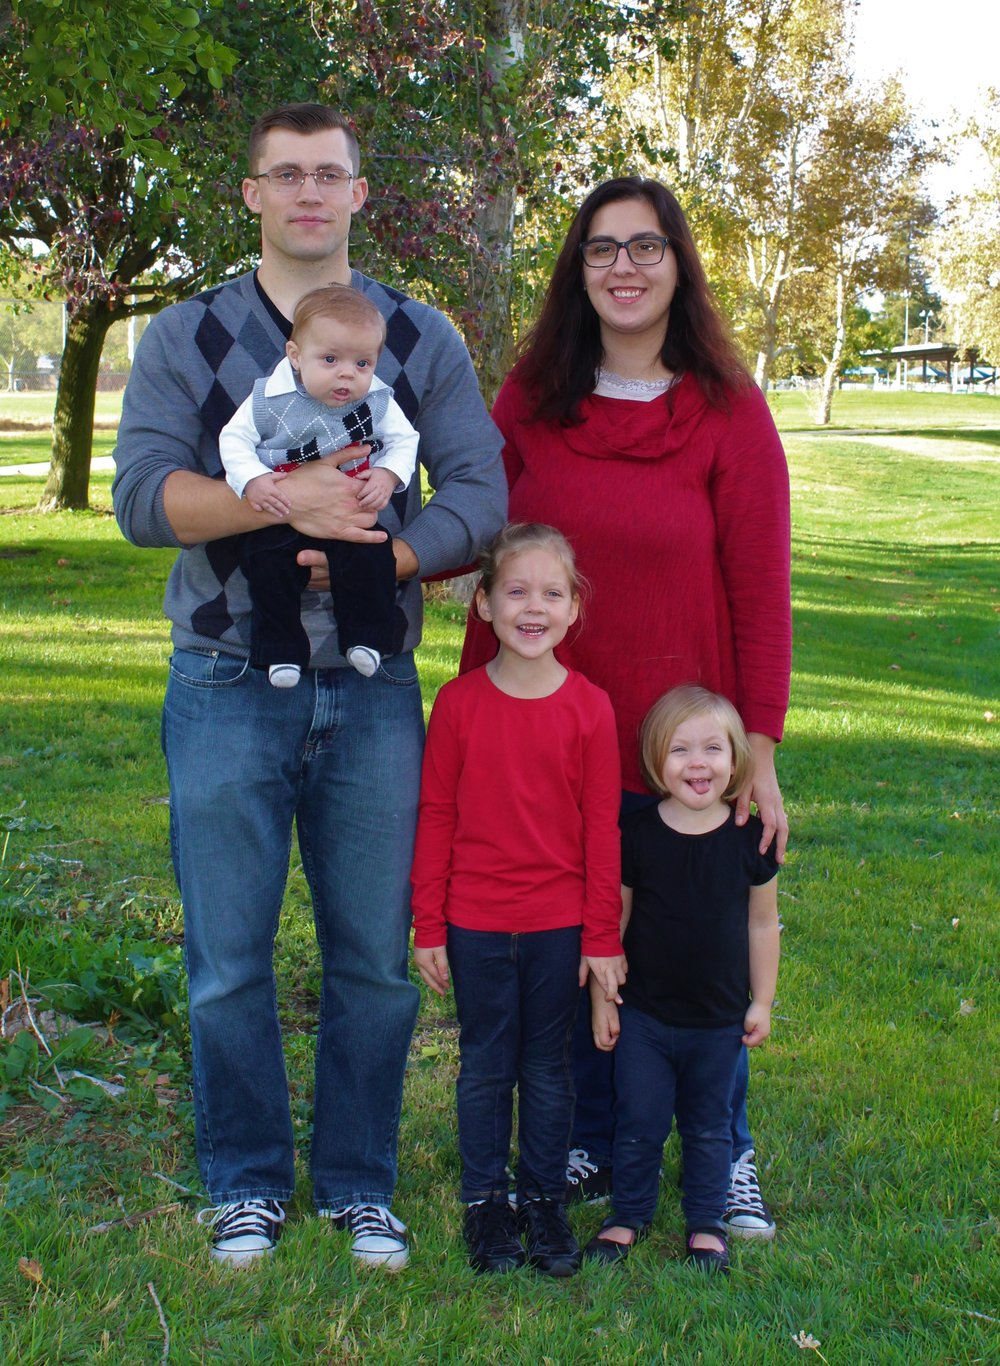 Zach and Katie Erickson with their three children: Sofia, Olivia, and James. Zach serves as an usher, and Katie is the incoming treasurer, beginning in July.